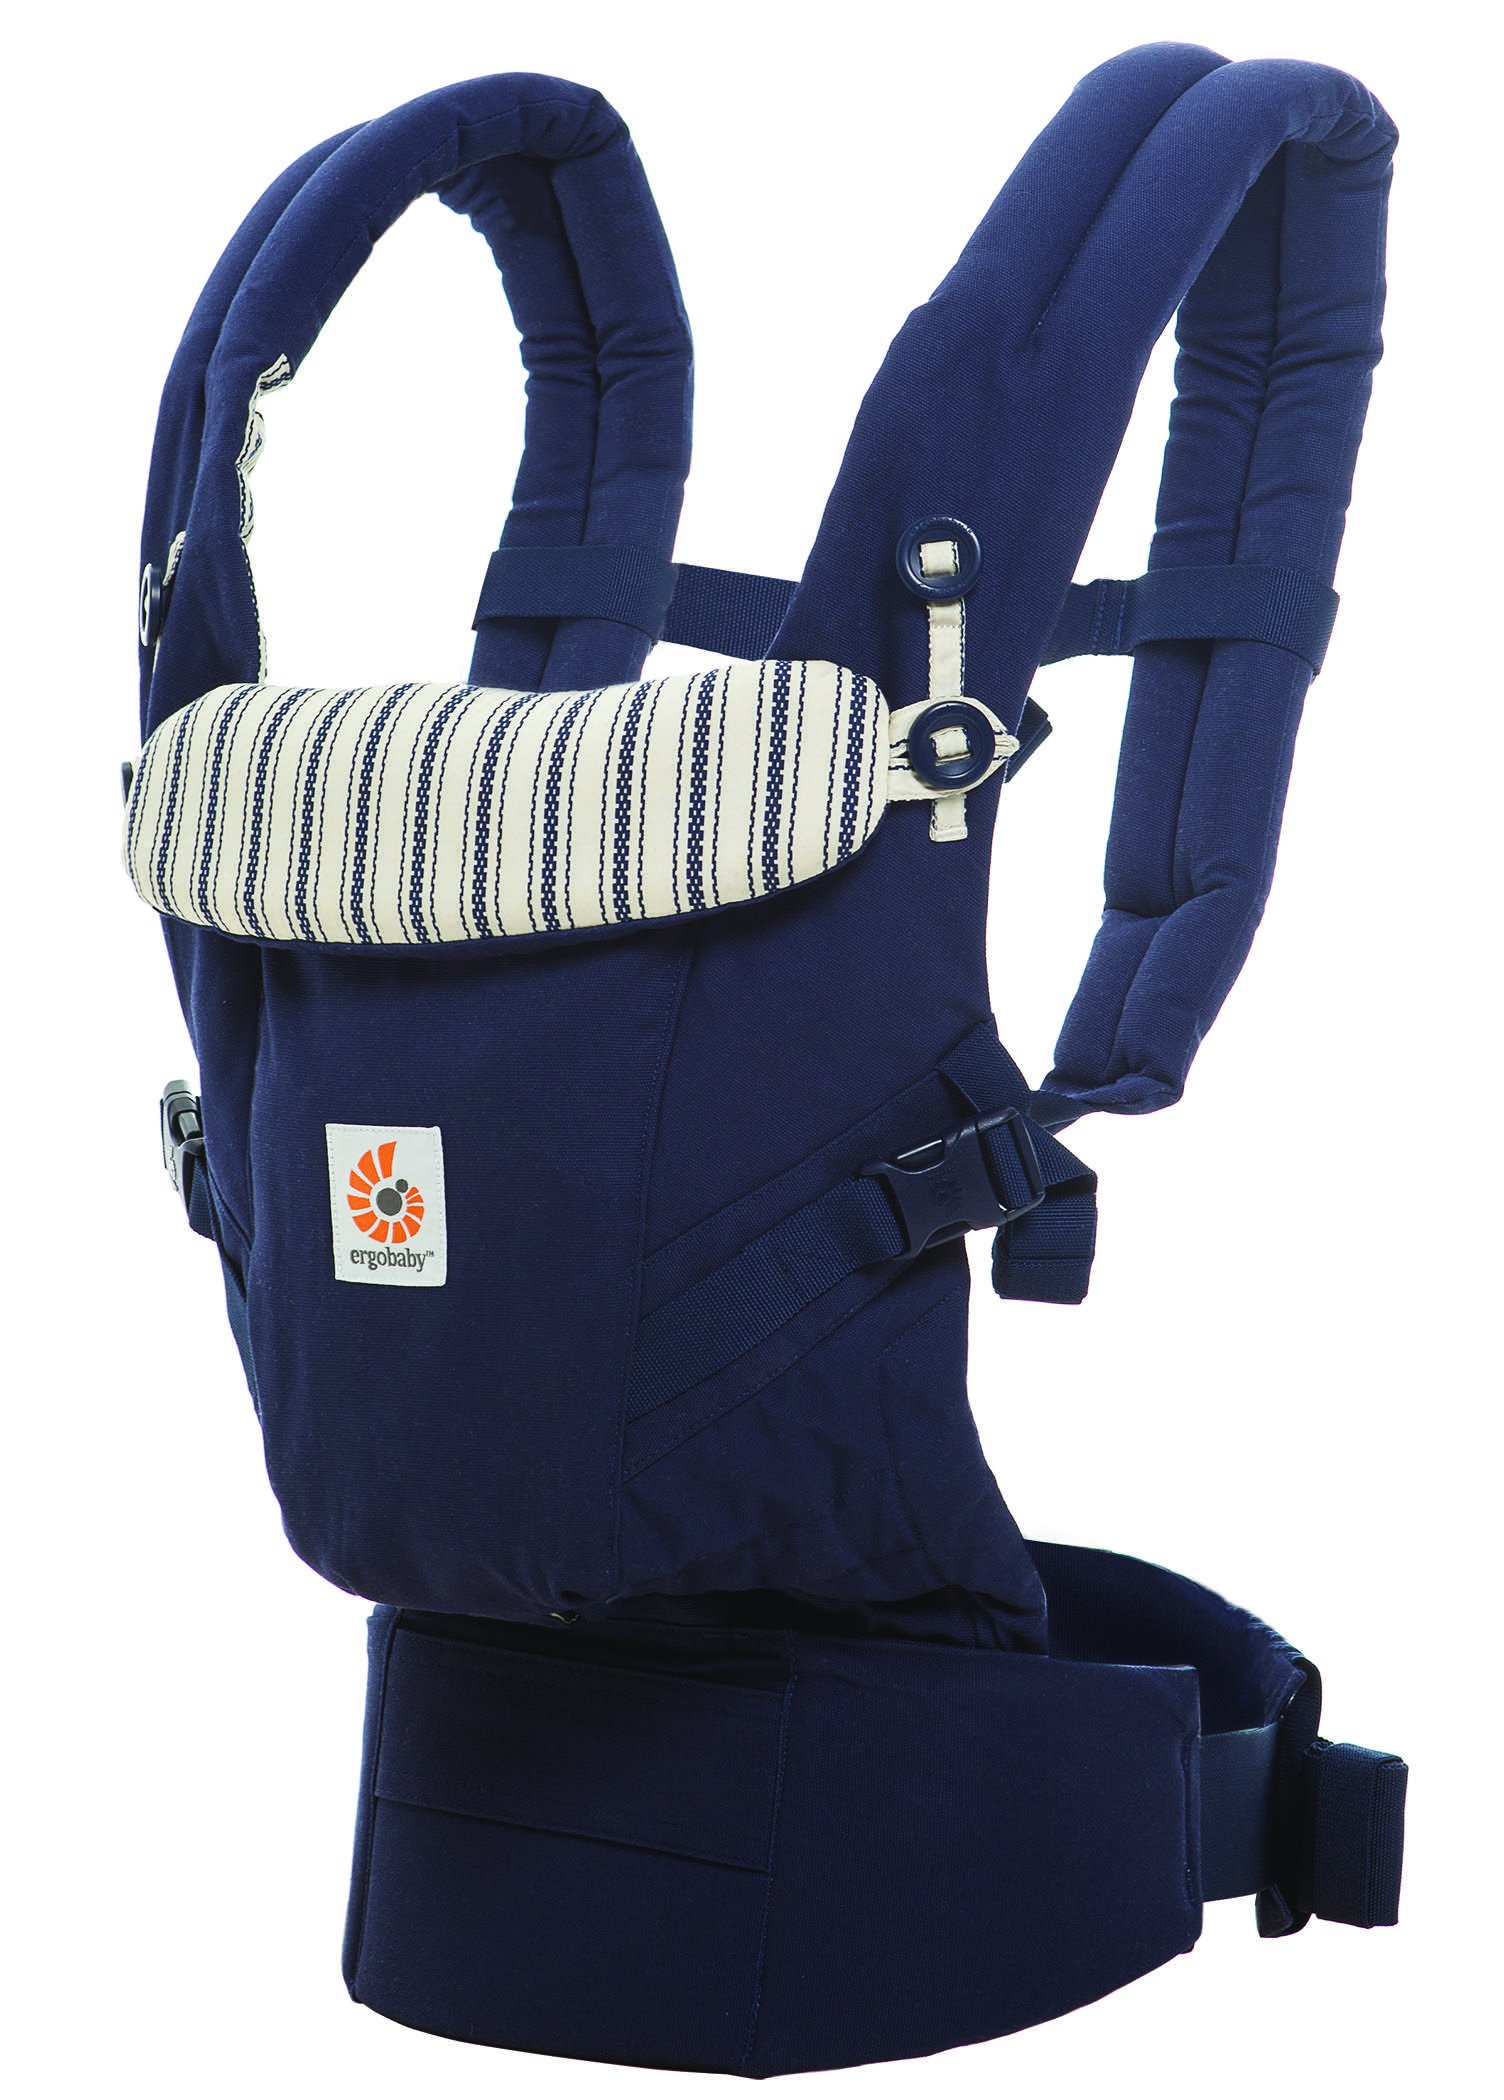 Ergobaby Baby Carrier for Newborn to Toddler, Admiral Blue Adapt 3-Position Ergonomic Child Carrier Backpack Ergobaby Carrier for newborns - The ergonomic bucket seat gradually adjusts to your growing baby, to ensure baby is seated in a natural frog-leg position (M-shape position) from newborn to toddler (3.2-20 kg / 7-45 lbs). NEW - Now with lumbar support. Long-wearing comfort for parents with even weight distribution between hips and shoulders. Lumbar support waistbelt that can be adjusted to the height of the carry position for extra, long-wearing comfort. 3 carry positions: front-inward, hip and back. The carrier has a padded, foldable head and neck support and a tuck-away baby hood for sun protection (UPF 50+) and privacy. It is possible to breastfeed in the carrier. 1